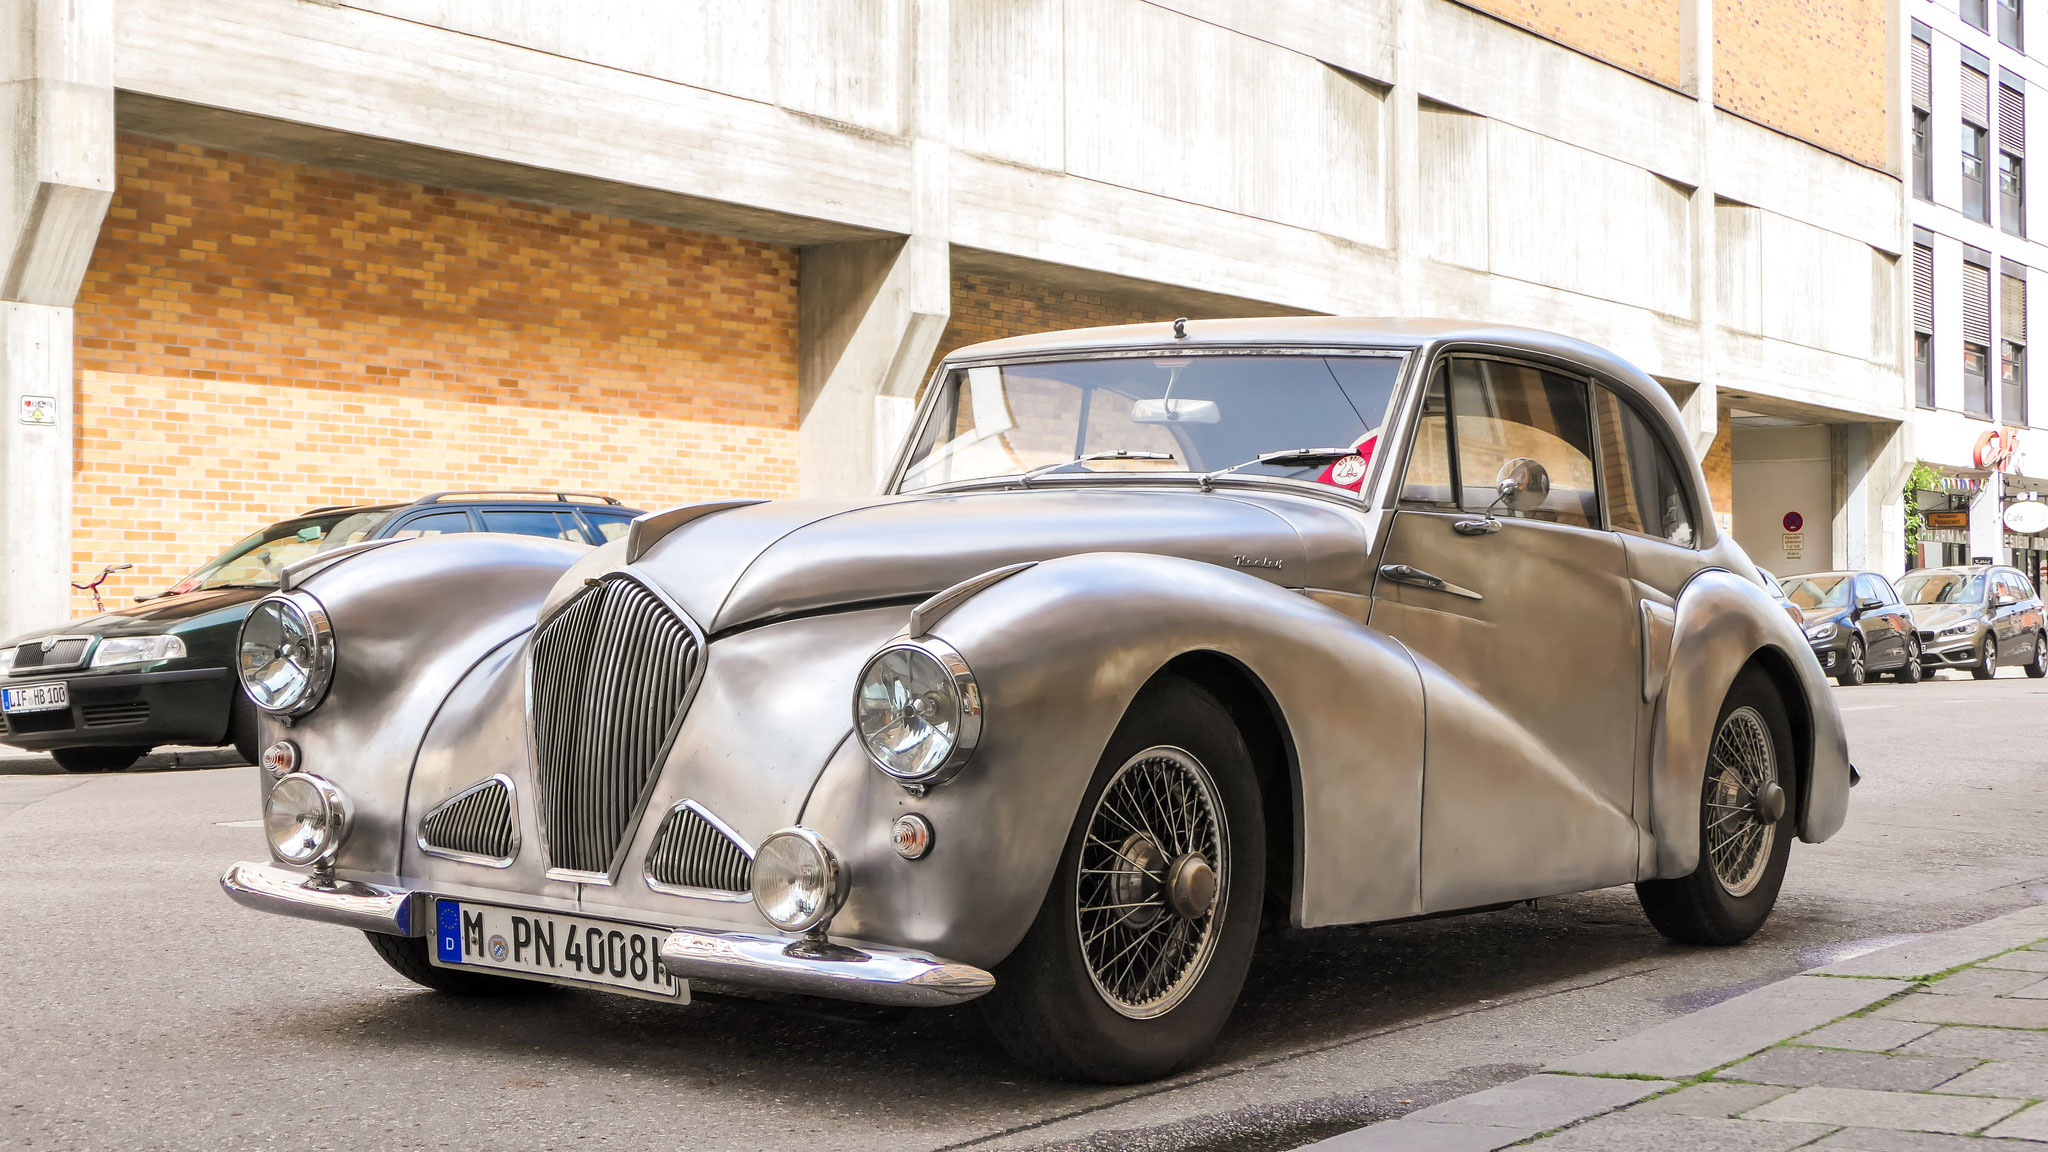 Healey Abbot Drophead Coupe - M-PN-4008H